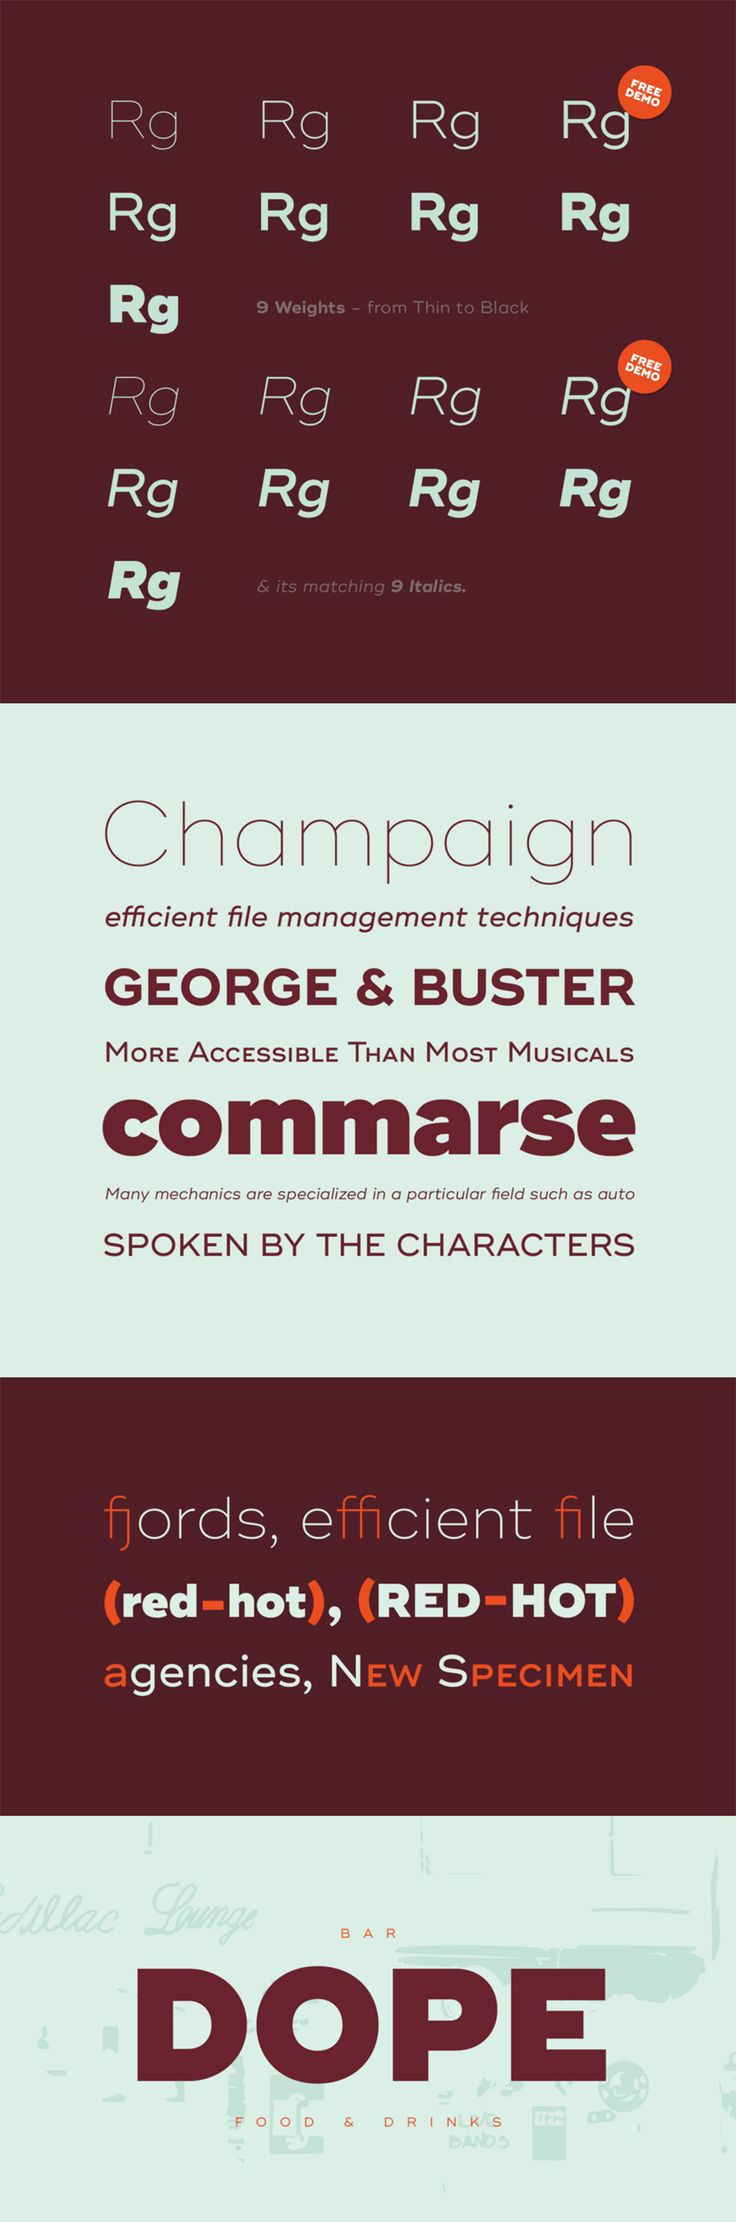 Ridley Grotesk is a modern sans-serif. It comes in nine weights with matching italics, designed with powerful opentype features in mind. Perfectly sui...